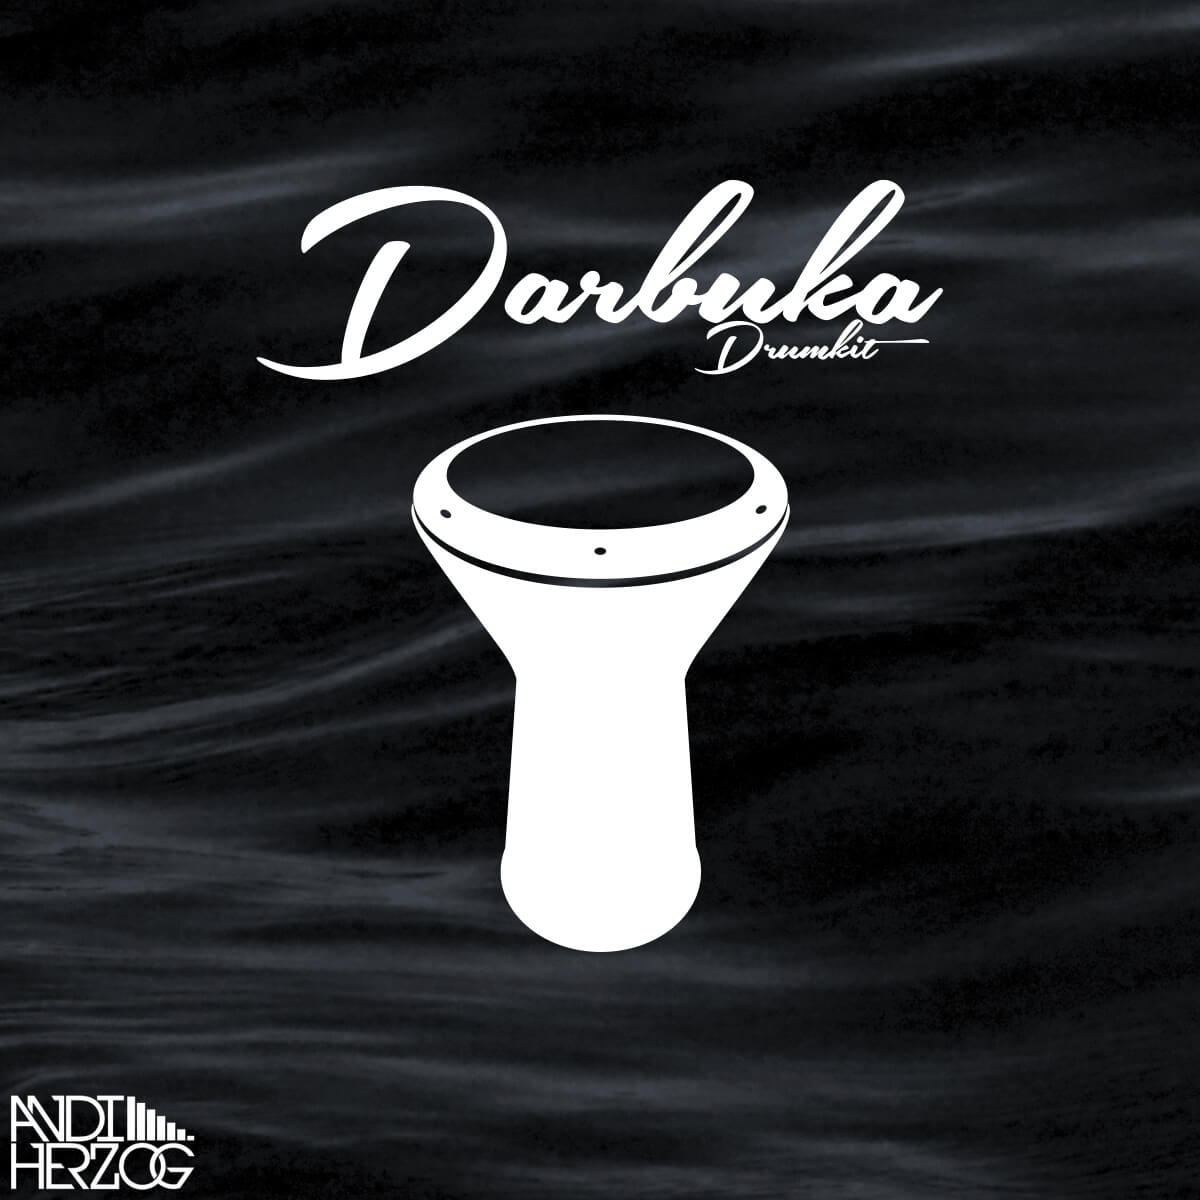 Darbuka Drumkit - Percussion Sounds - Andi Herzog